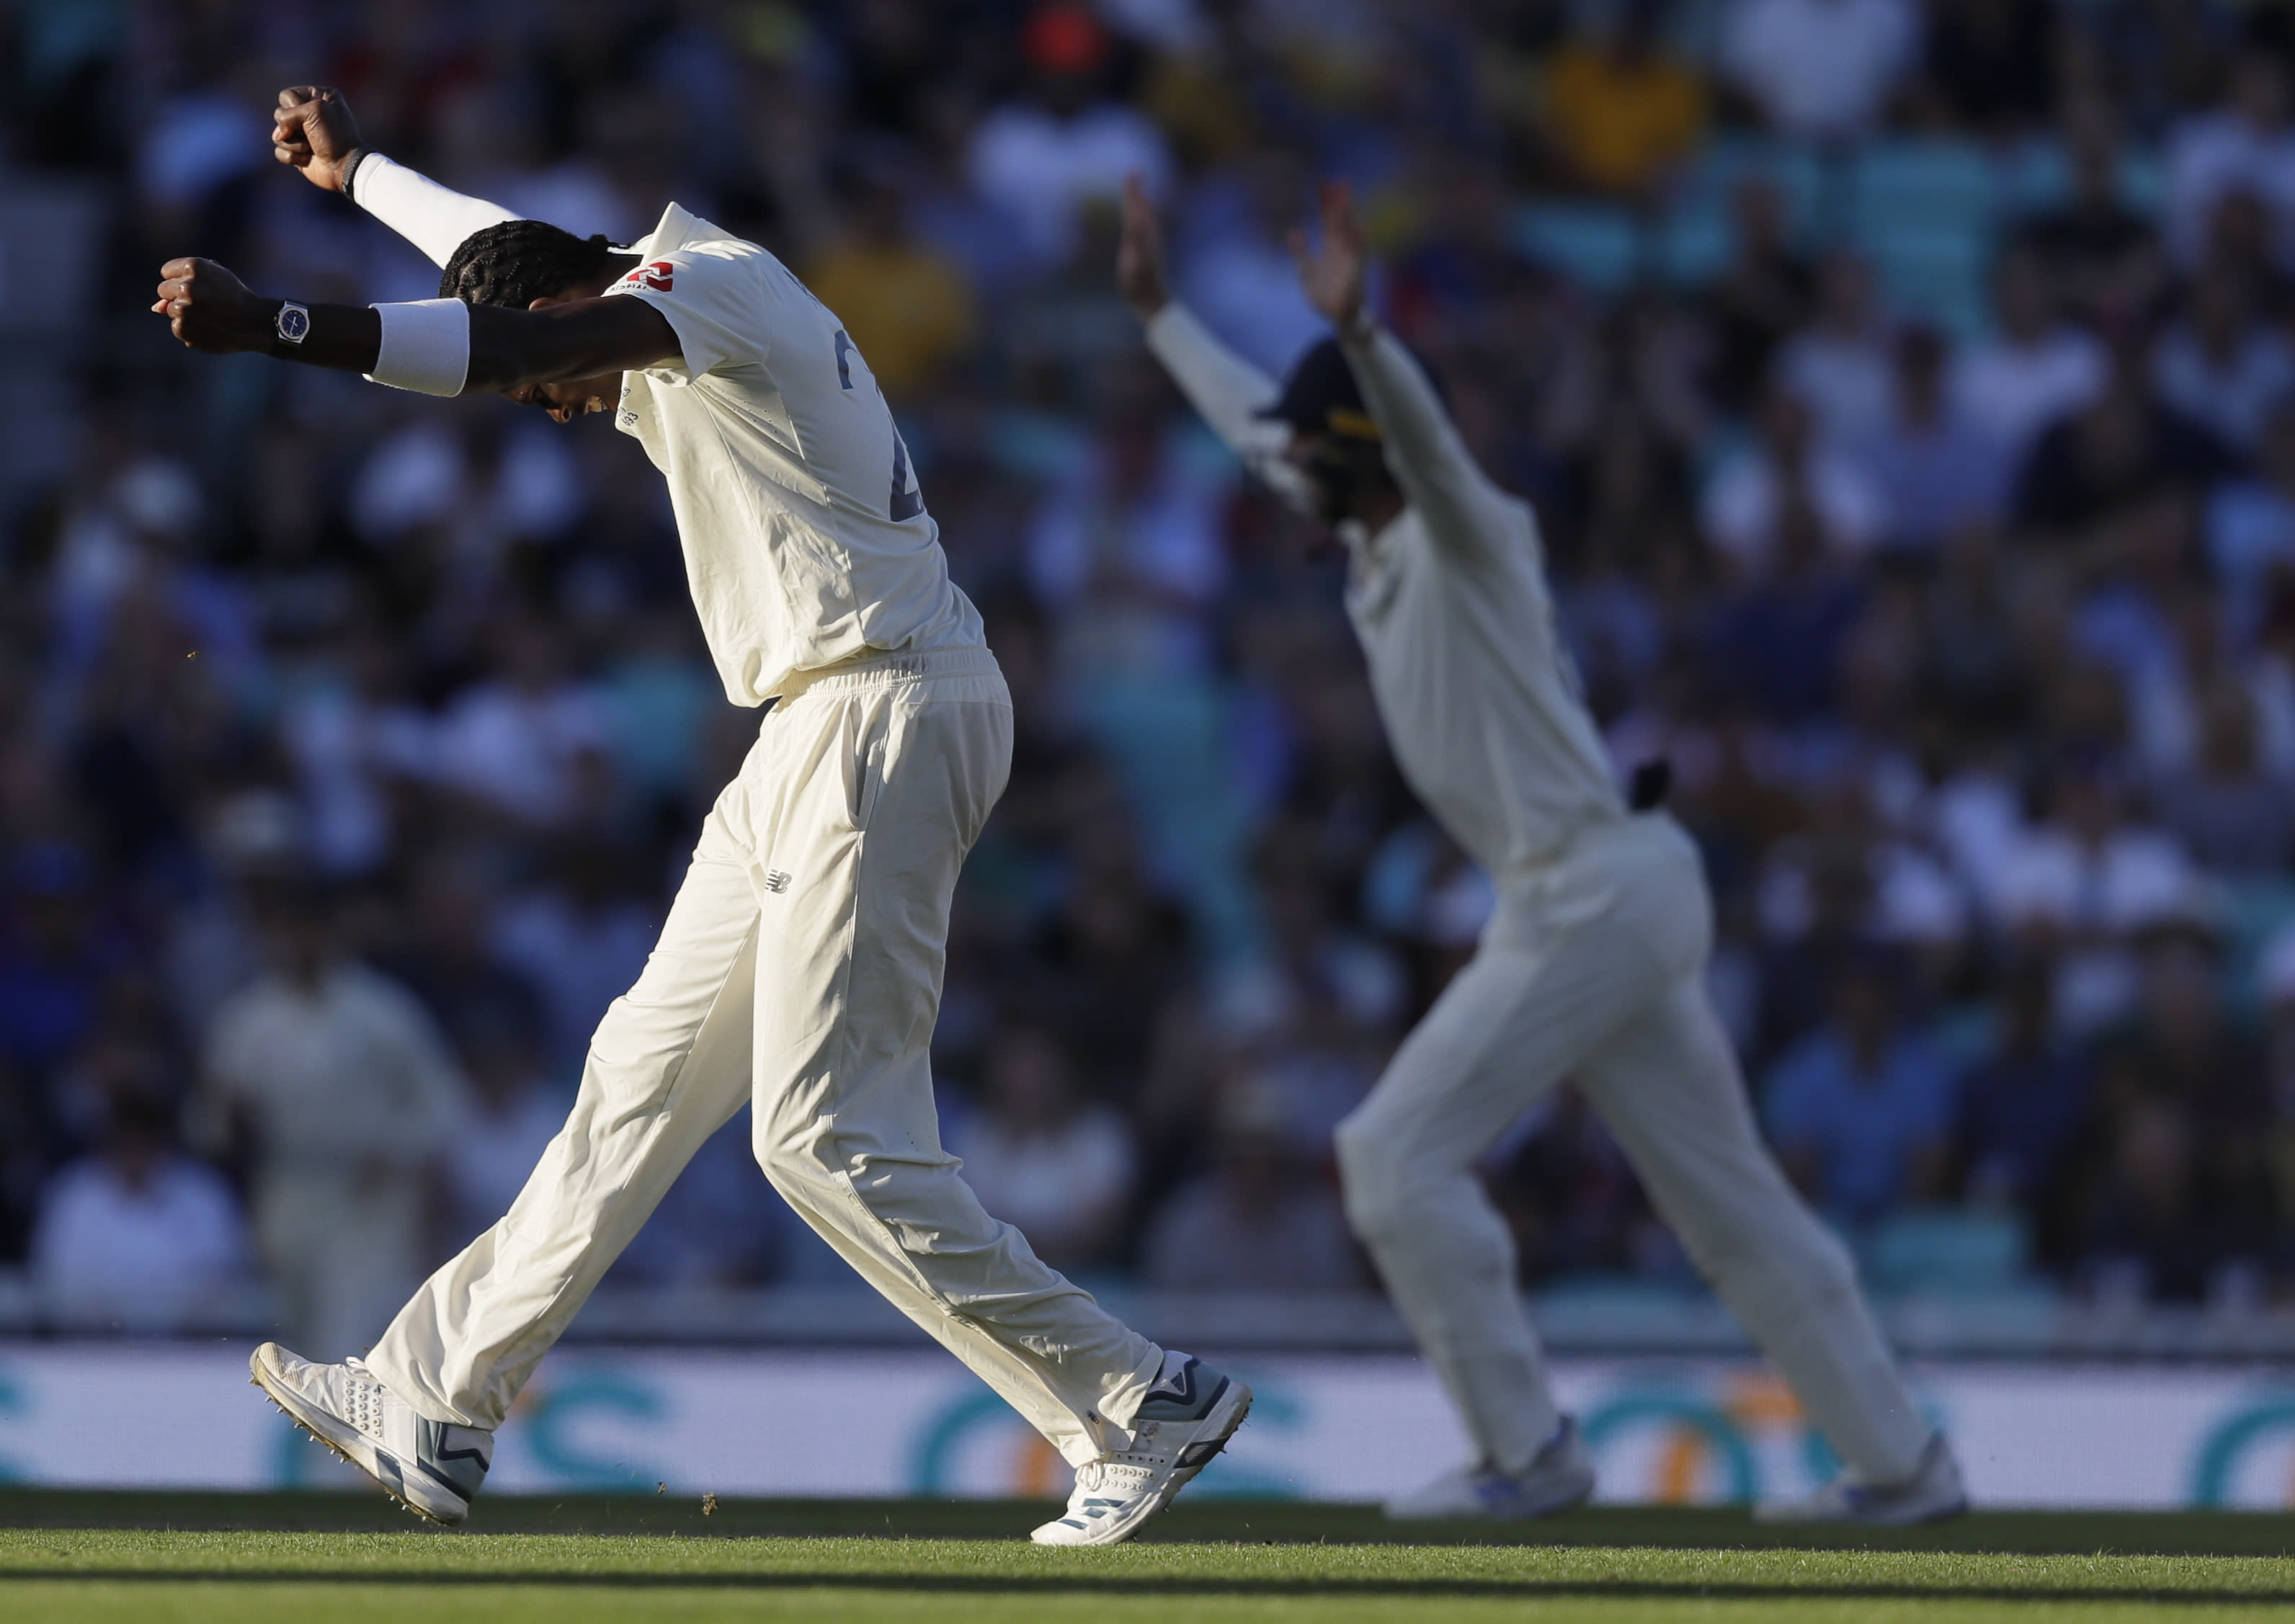 England's Jofra Archer celebrates taking the wicket of Australia's Peter Siddle during the second day of the fifth Ashes test match between England and Australia at the Oval cricket ground in London, Friday, Sept. 13, 2019. (AP Photo/Kirsty Wigglesworth)